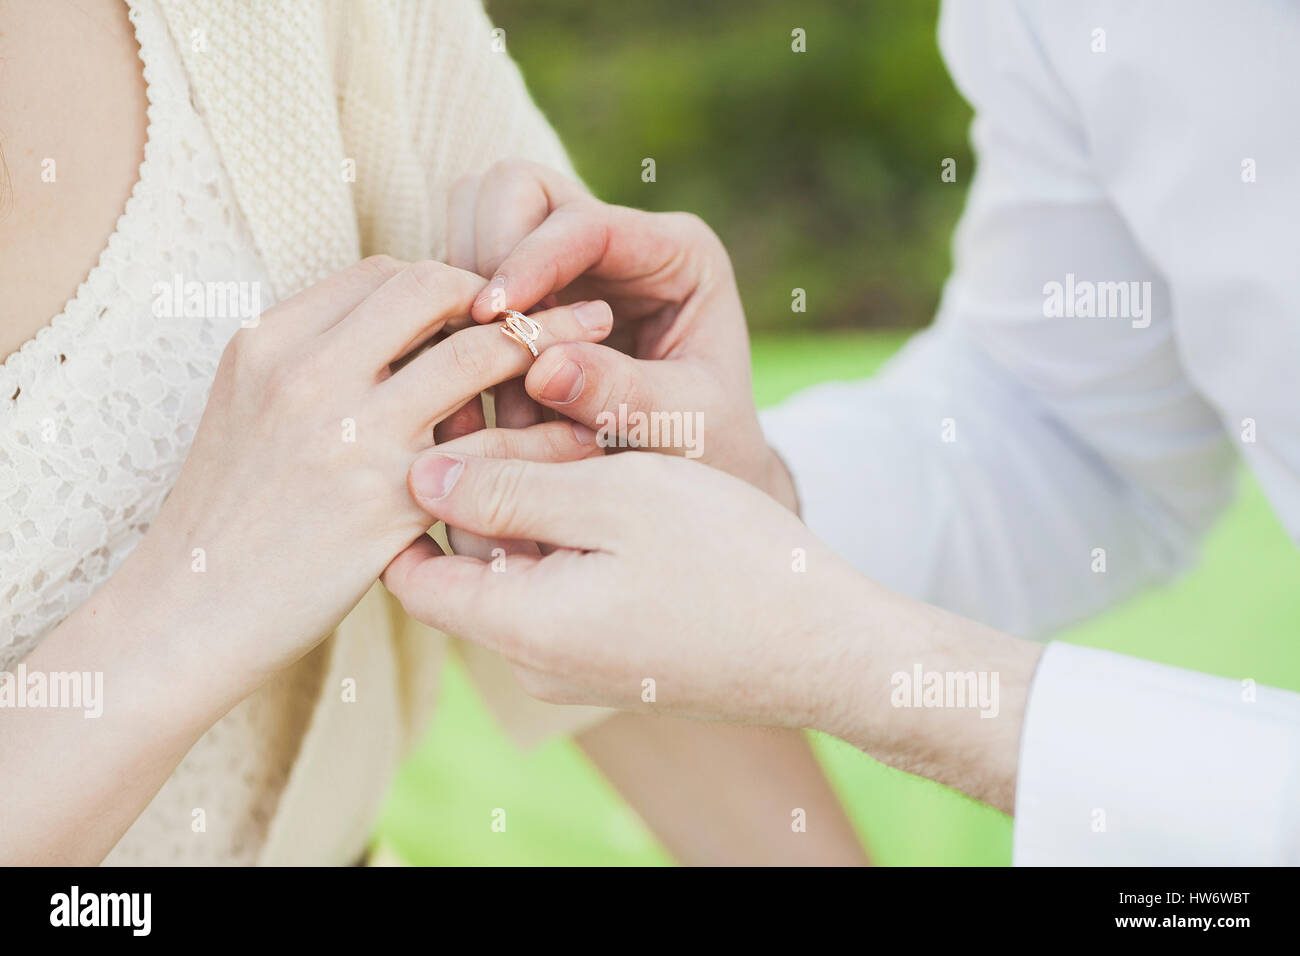 the offer to marry. hands of the man dressing a ring on the belo - Stock Image